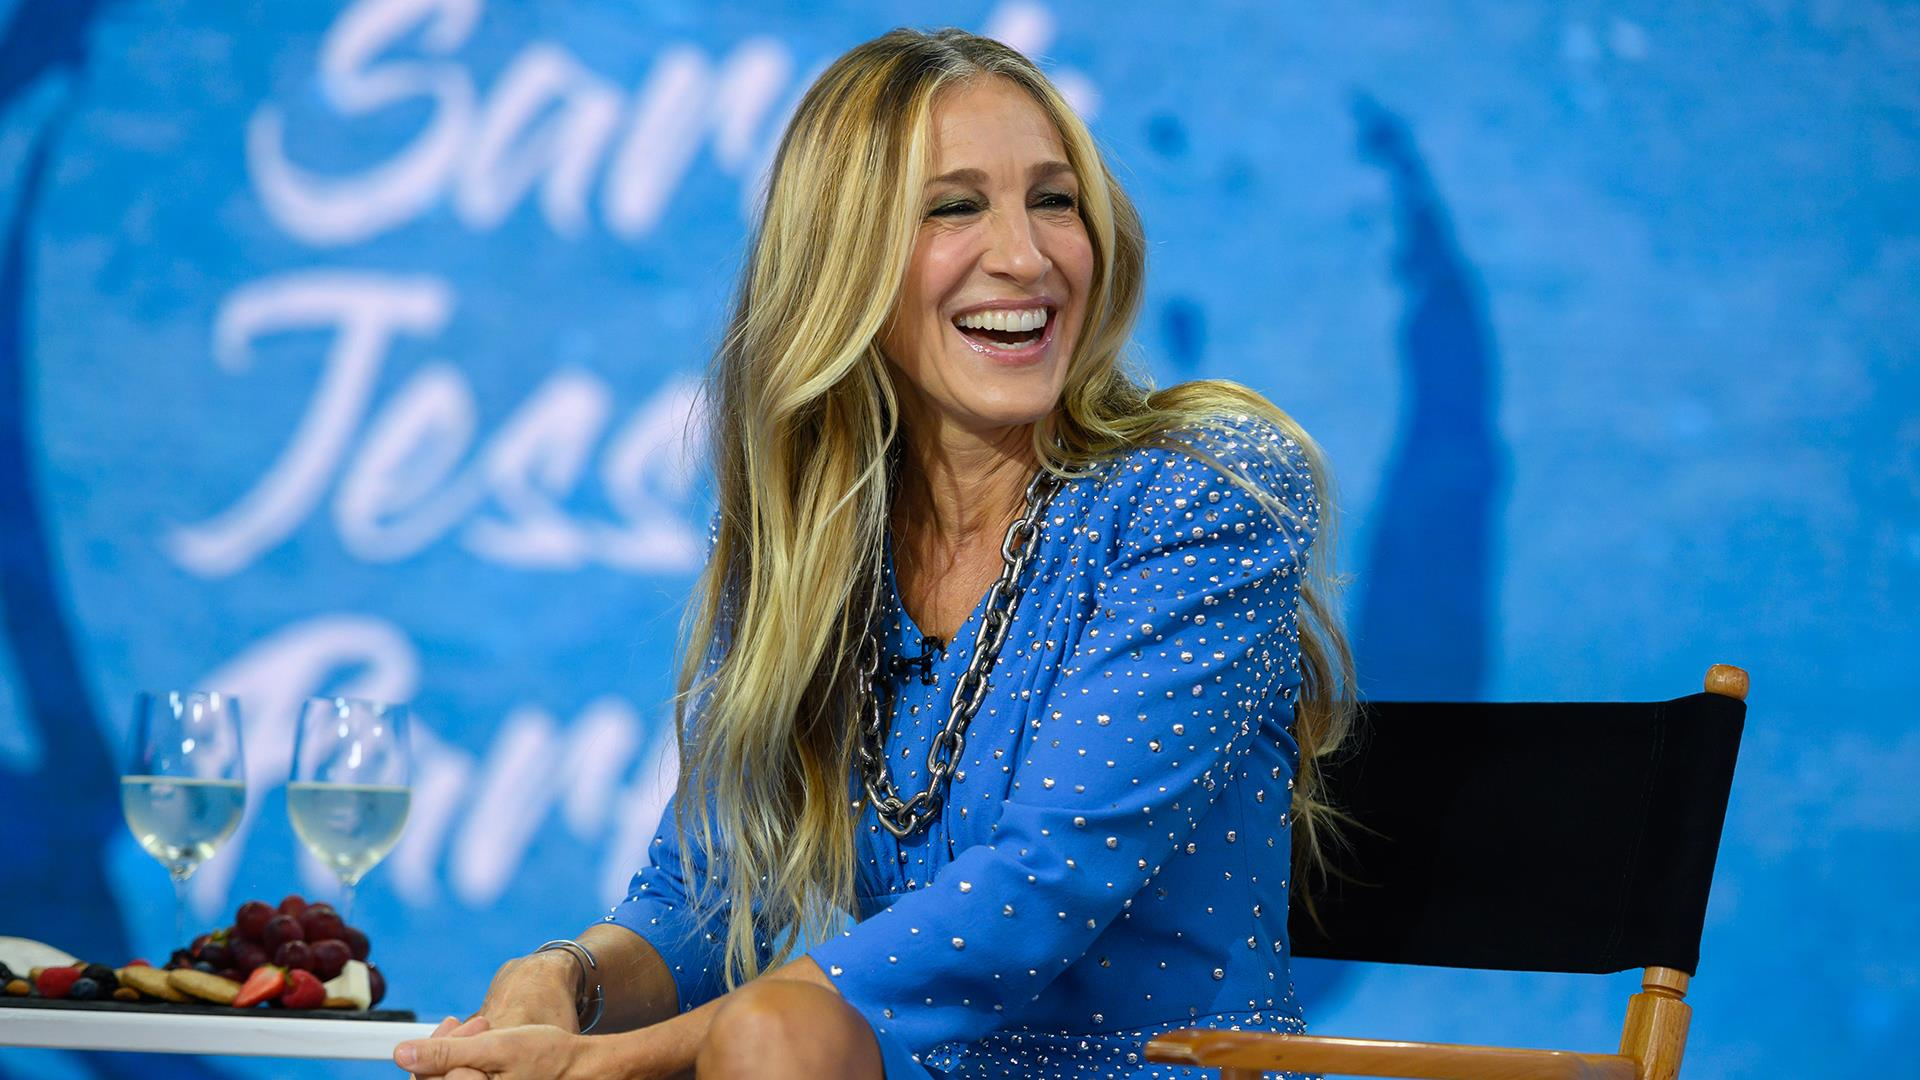 Sarah Jessica Parker talks 'Plaza Suite' and new wine collection